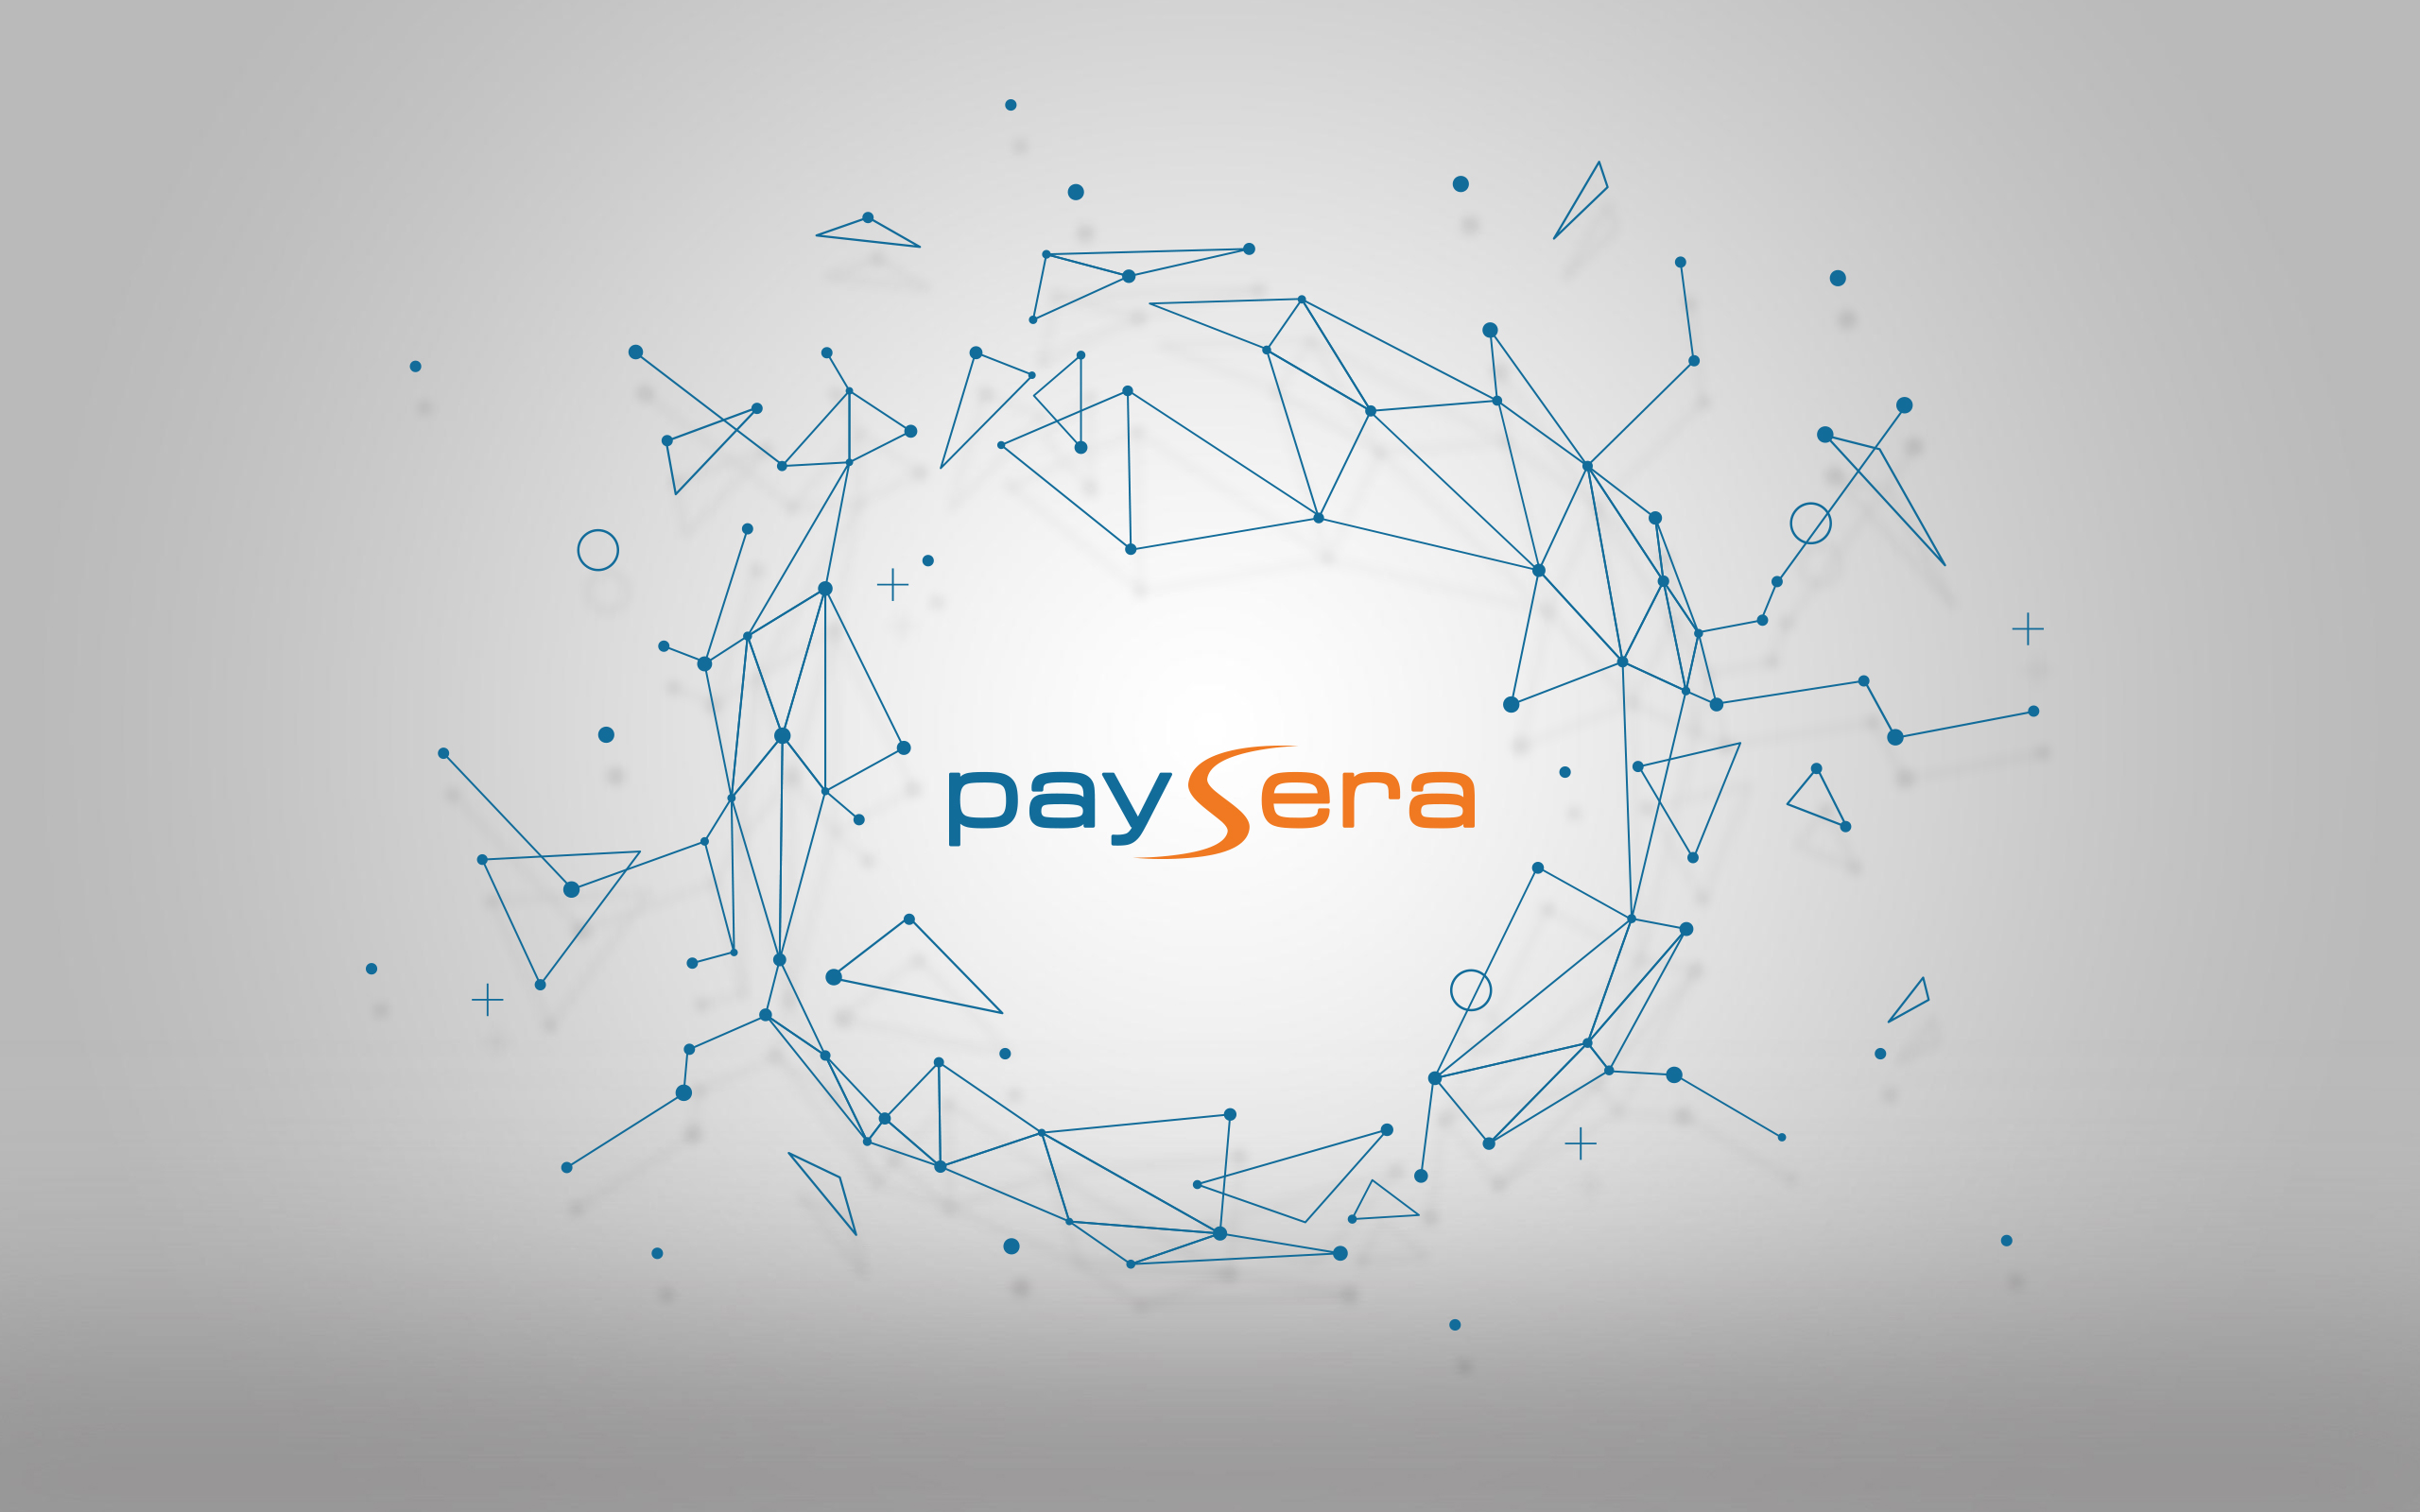 paysera_logo_picture